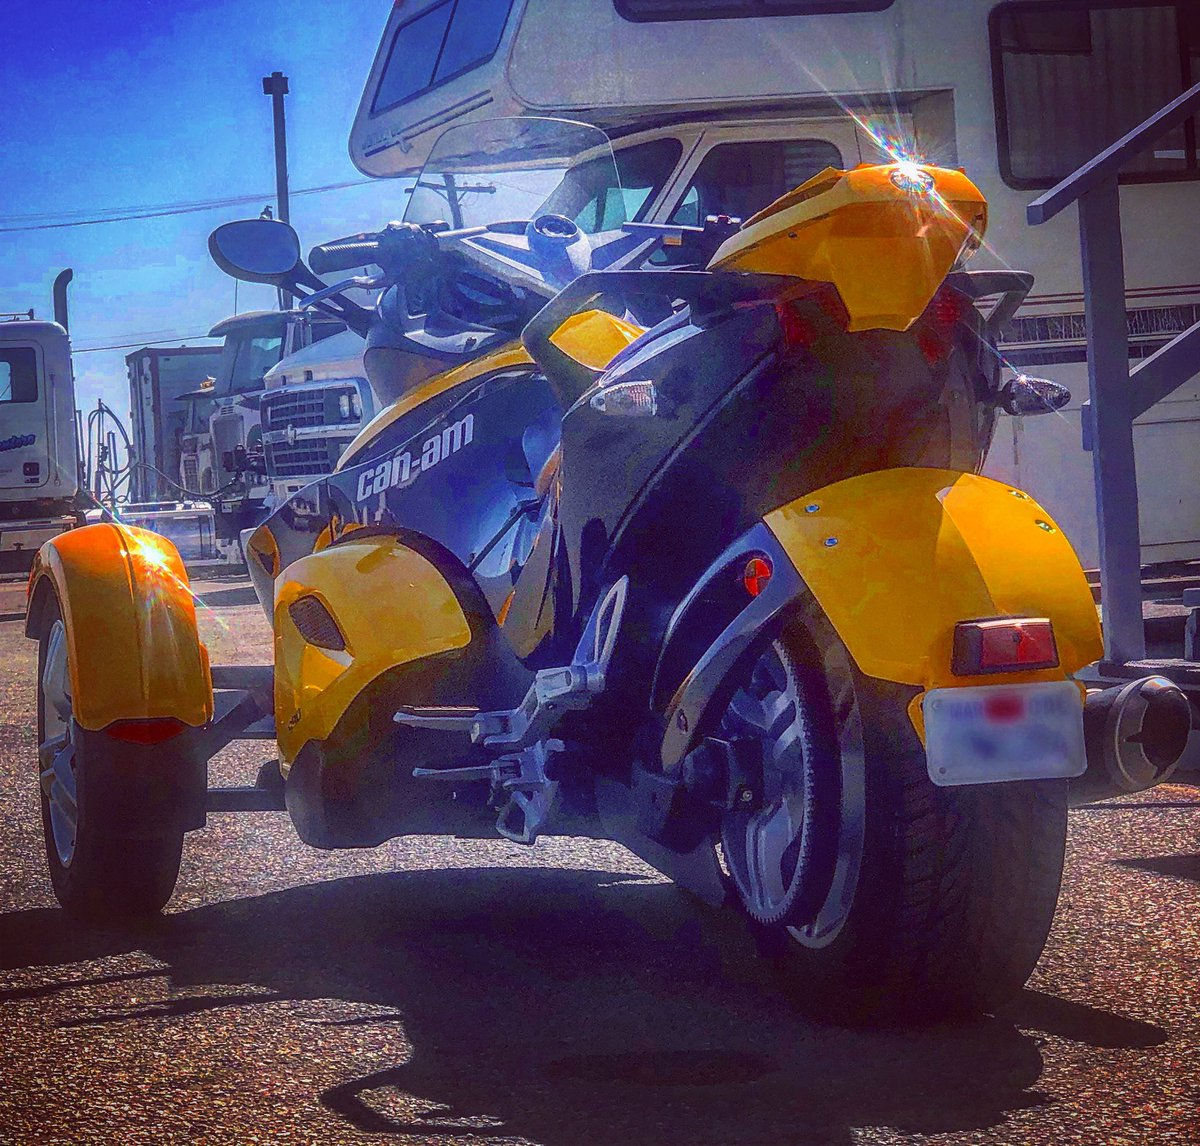 With the @CanAm #Spyder #Roadster .- #BuffyLaFlare https://t.co/YdAMHbZqY7